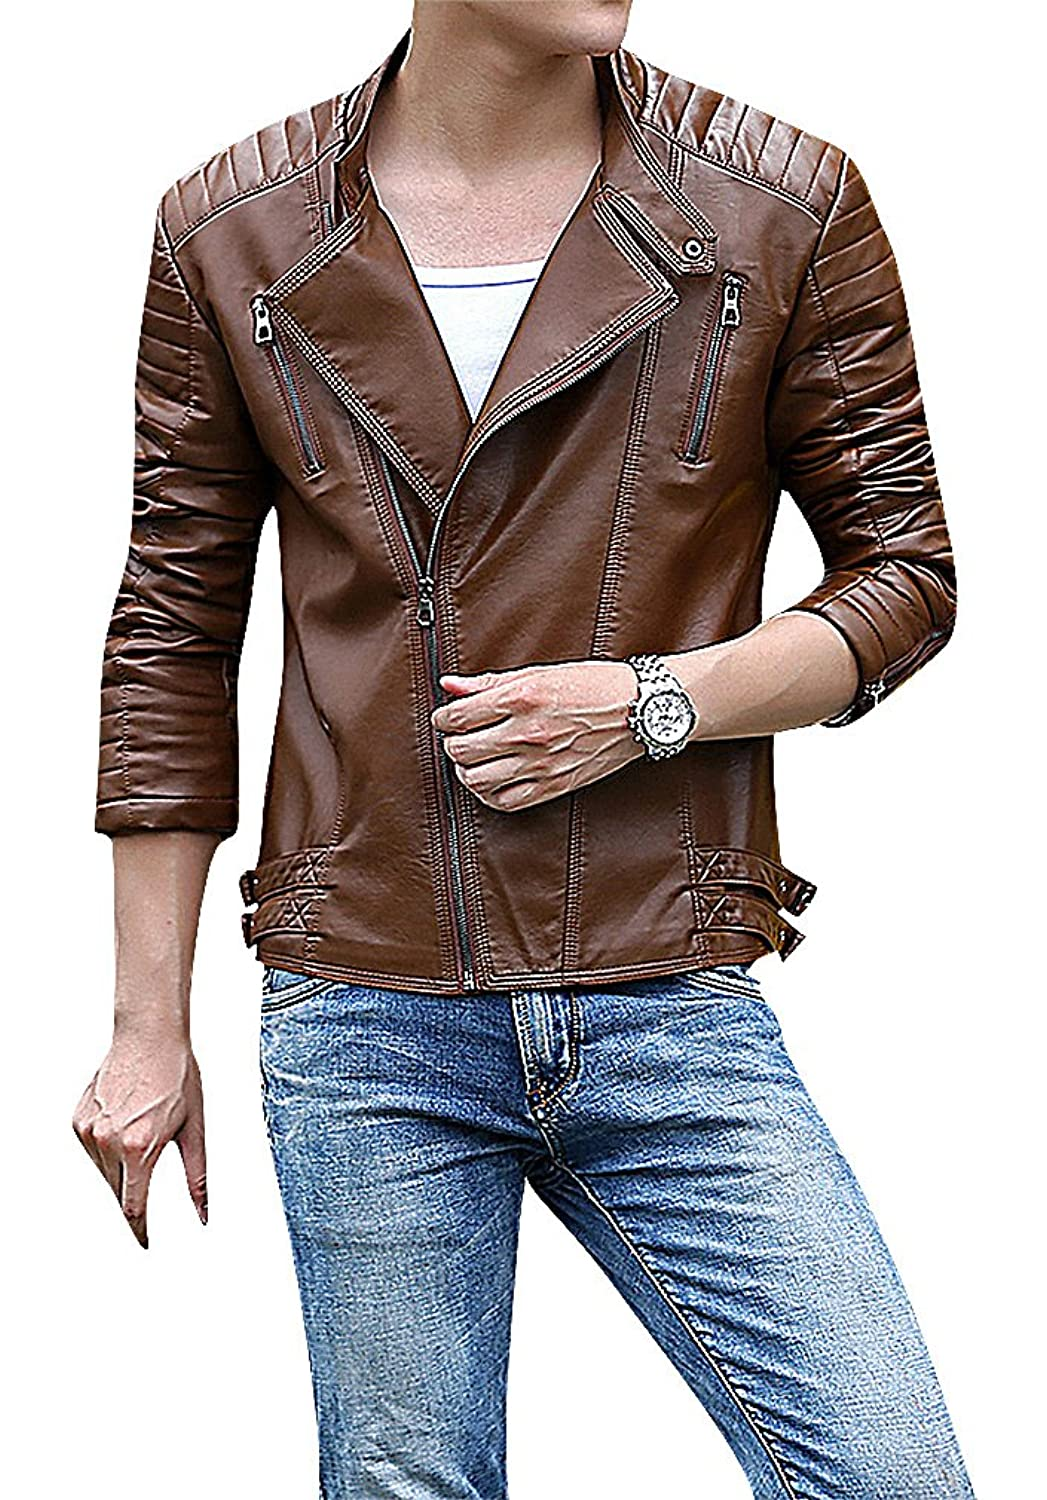 Men24 Men's 1 Color Seam Details Side Zipper Turndown Collar Fake Leather Jacket